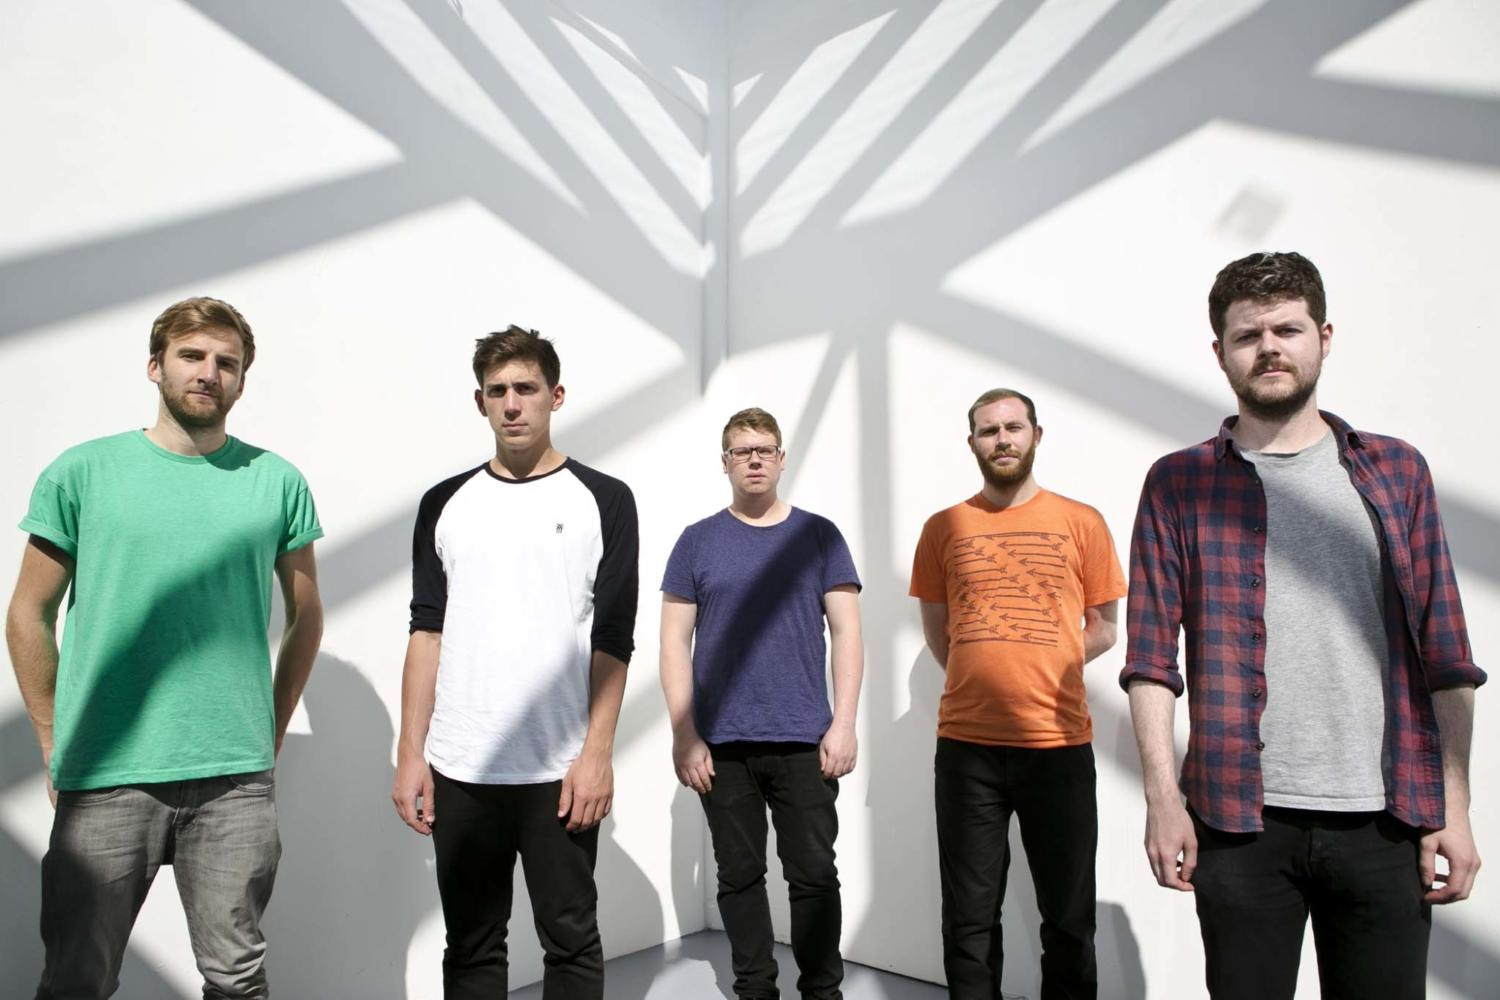 We Were Promised Jetpacks and The Twilight Sad to play King Tut's 25th Birthday shows